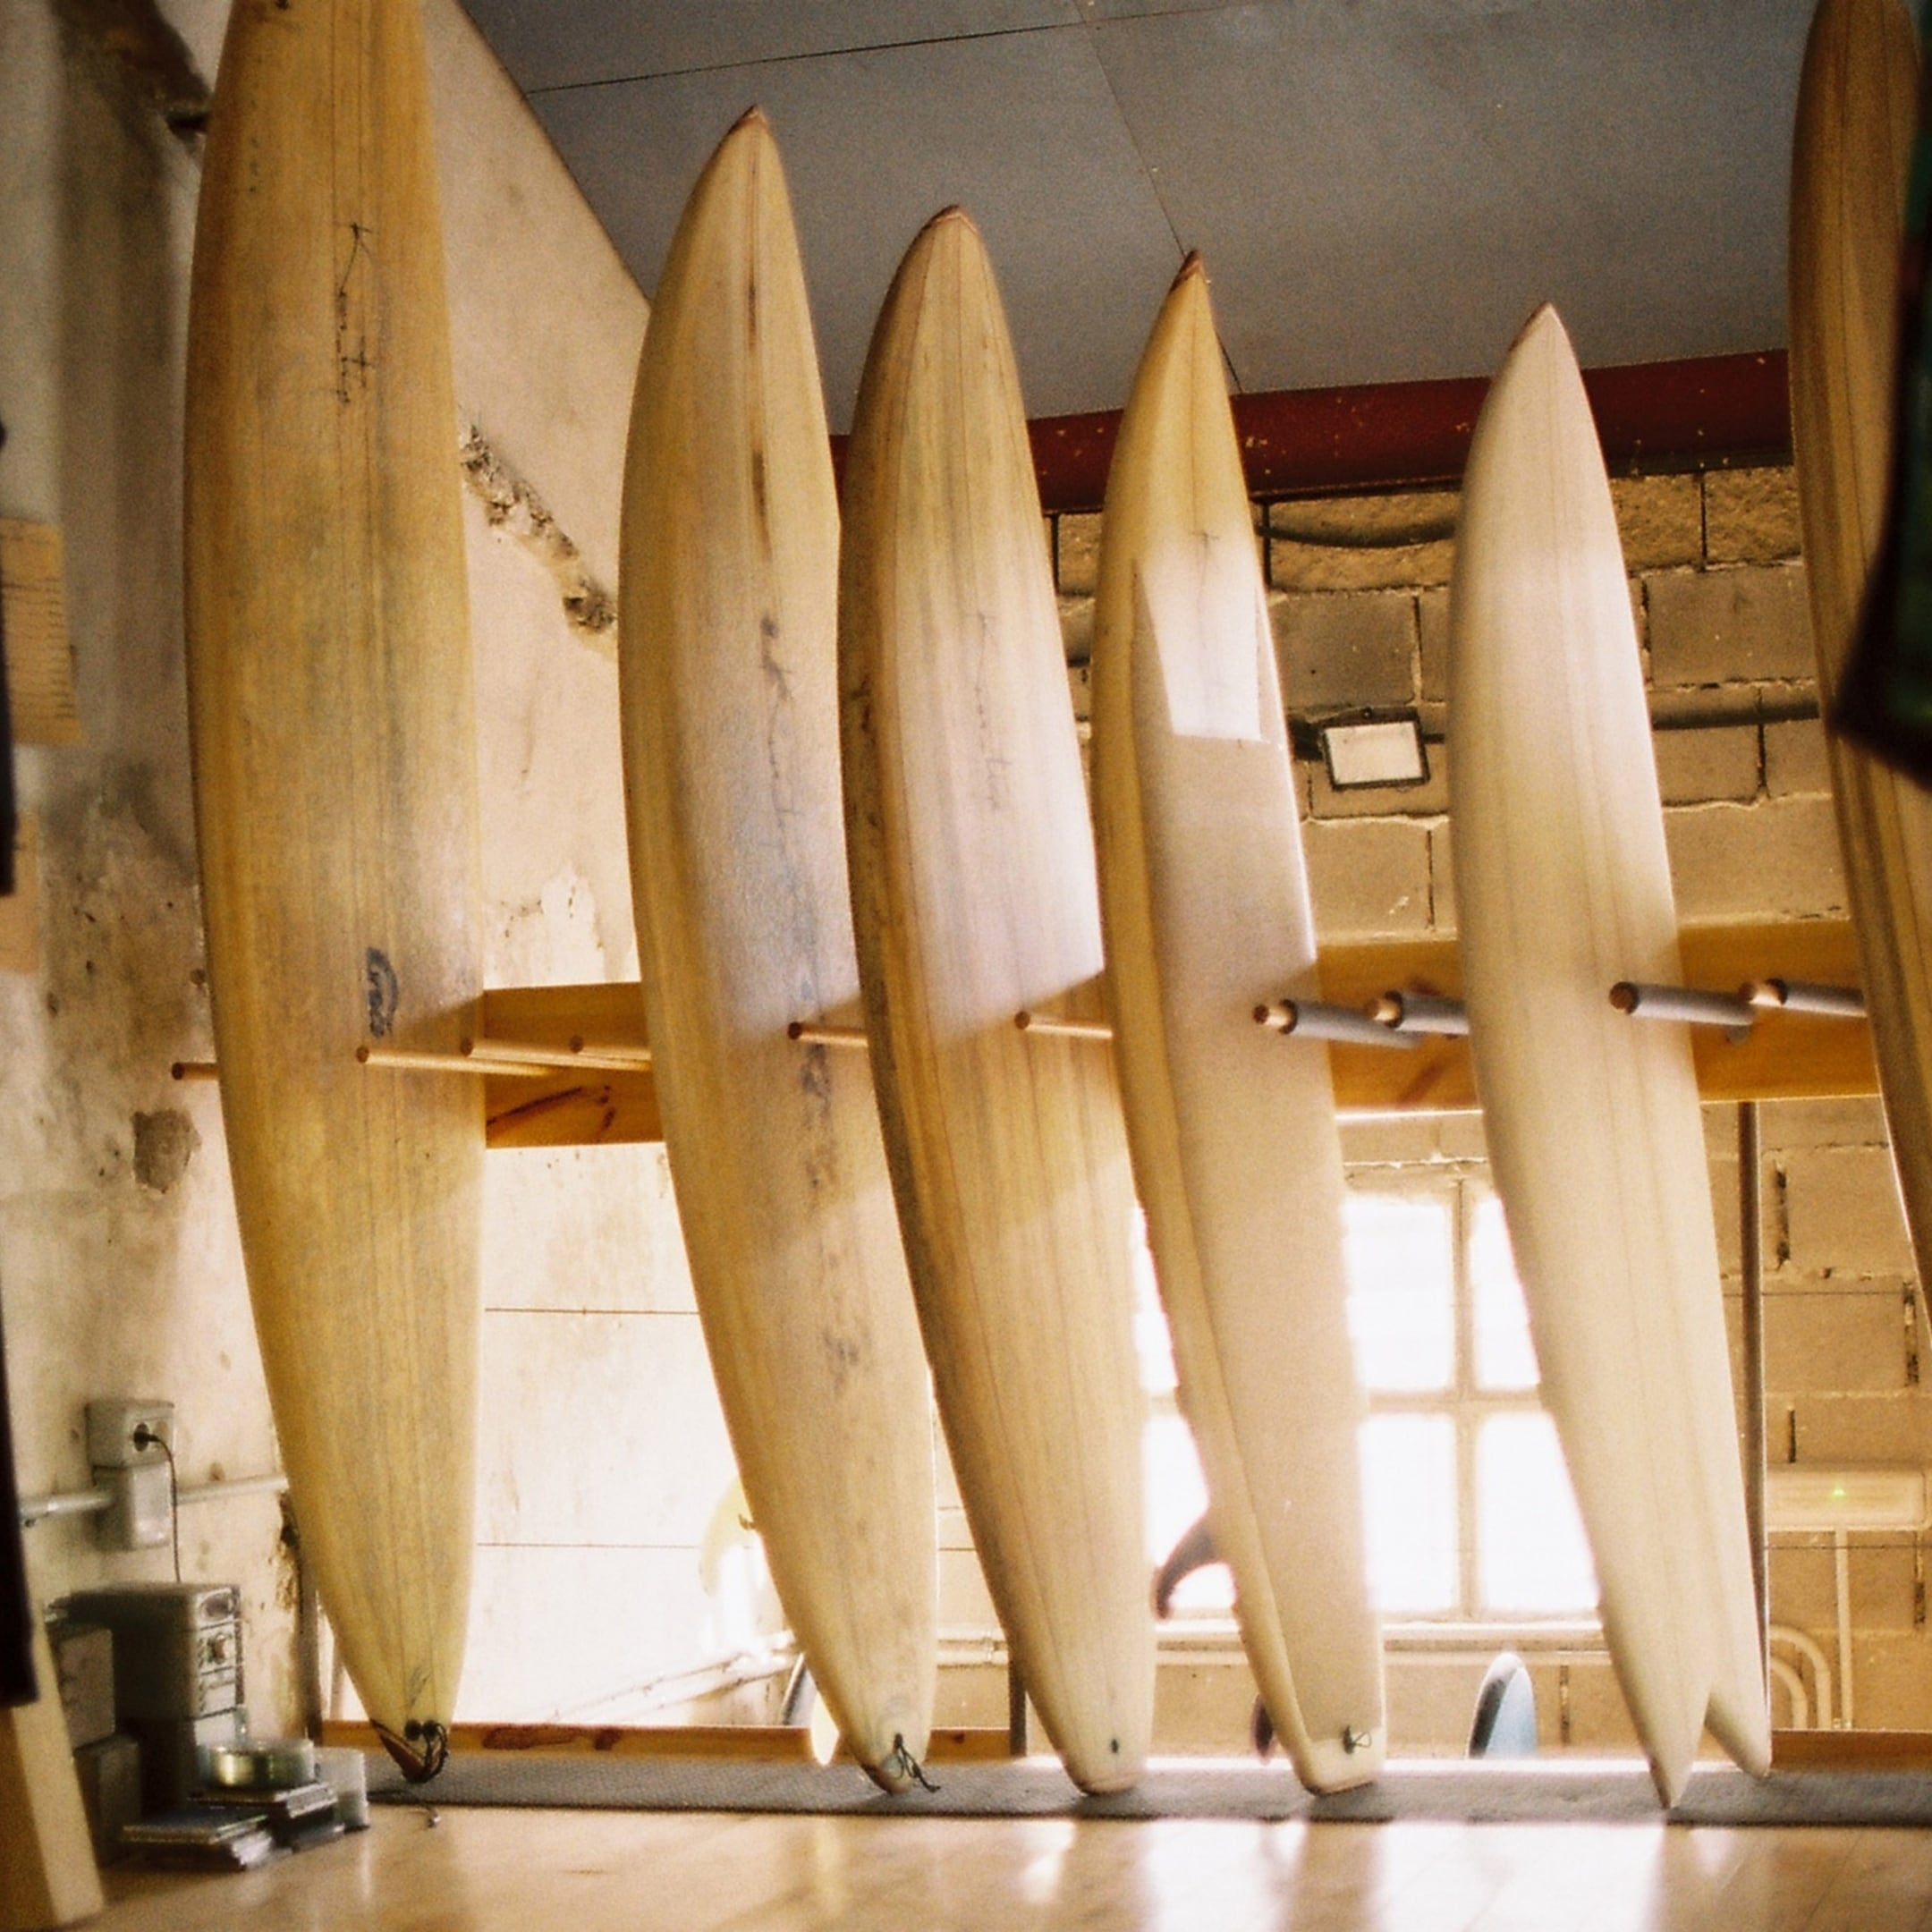 Wooden surfboards of different sizes in the surfshop